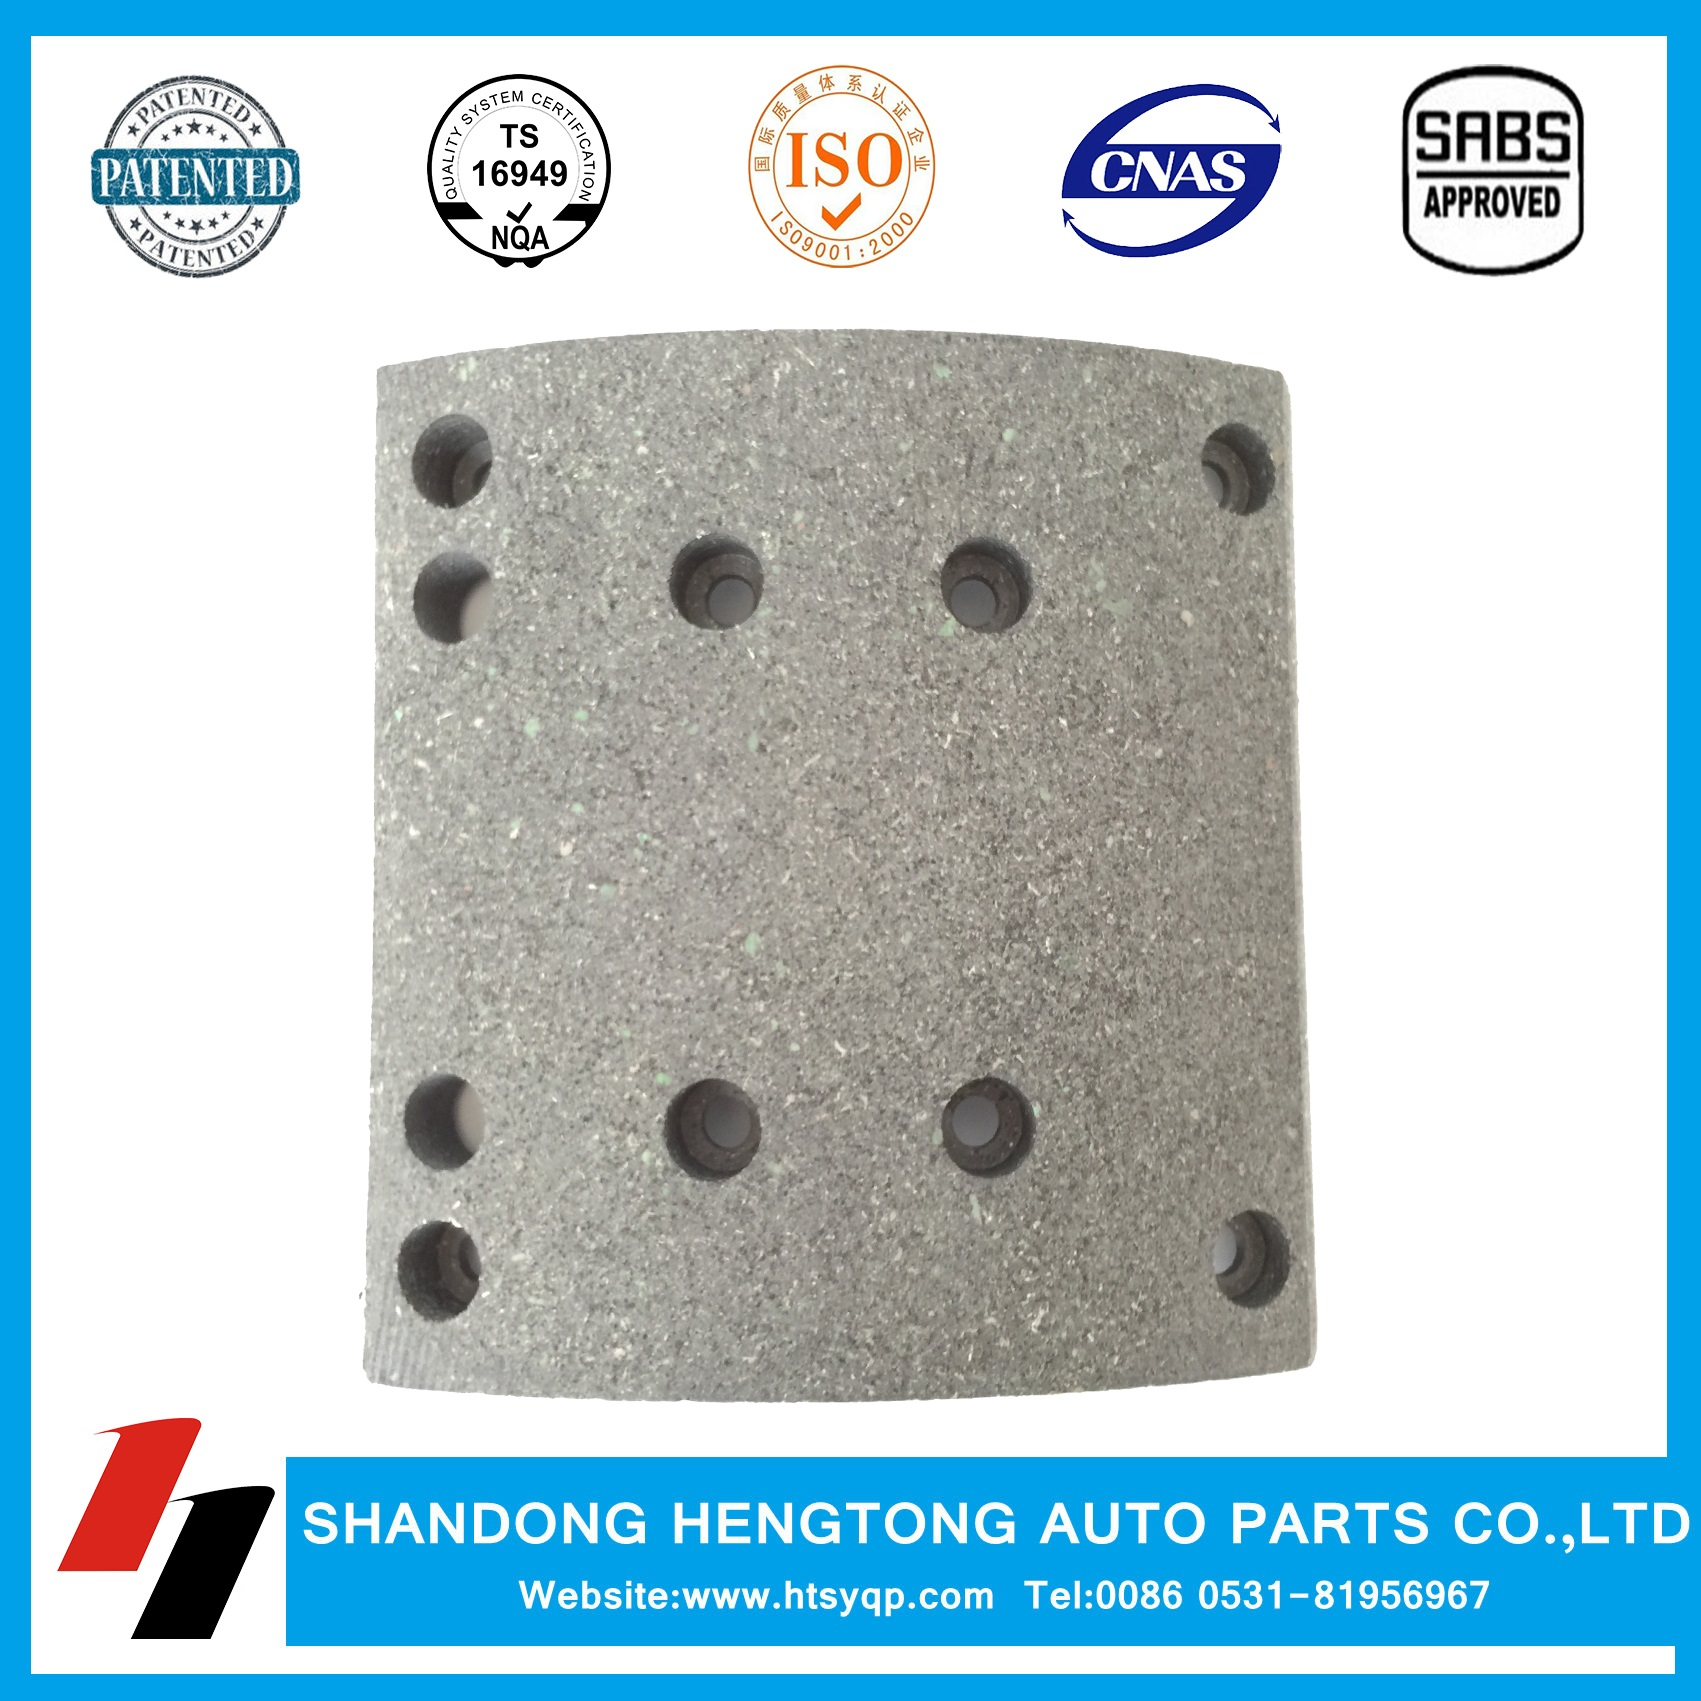 Man mercedes benz renault steyr brake lining wva19495 for Plaza mercedes benz service